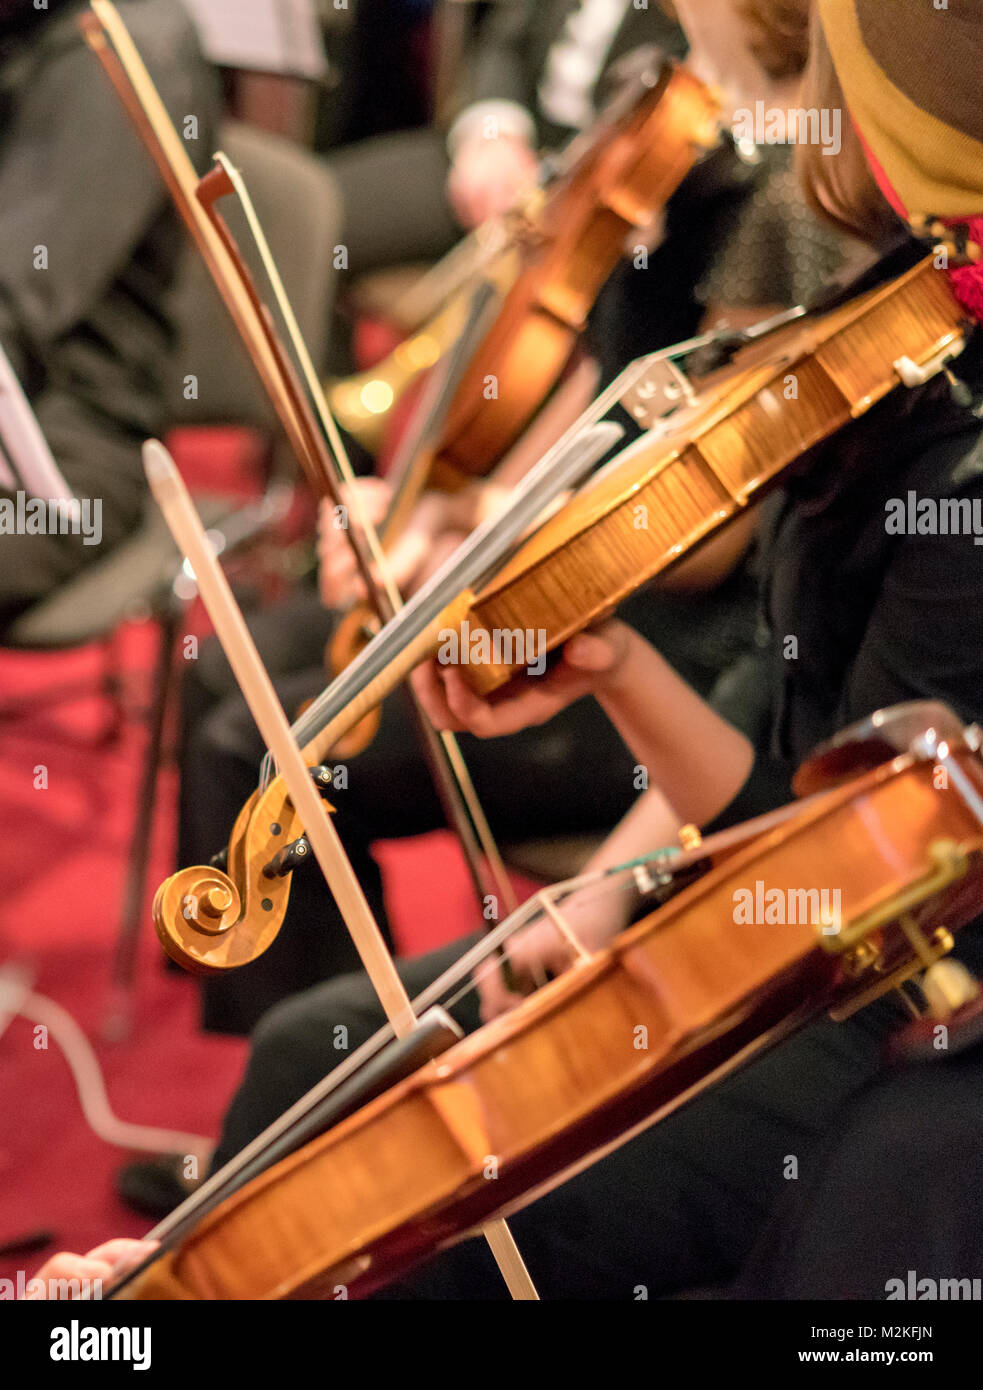 Three wooden violins playing in the orchestra close-up. Classical music - Stock Image